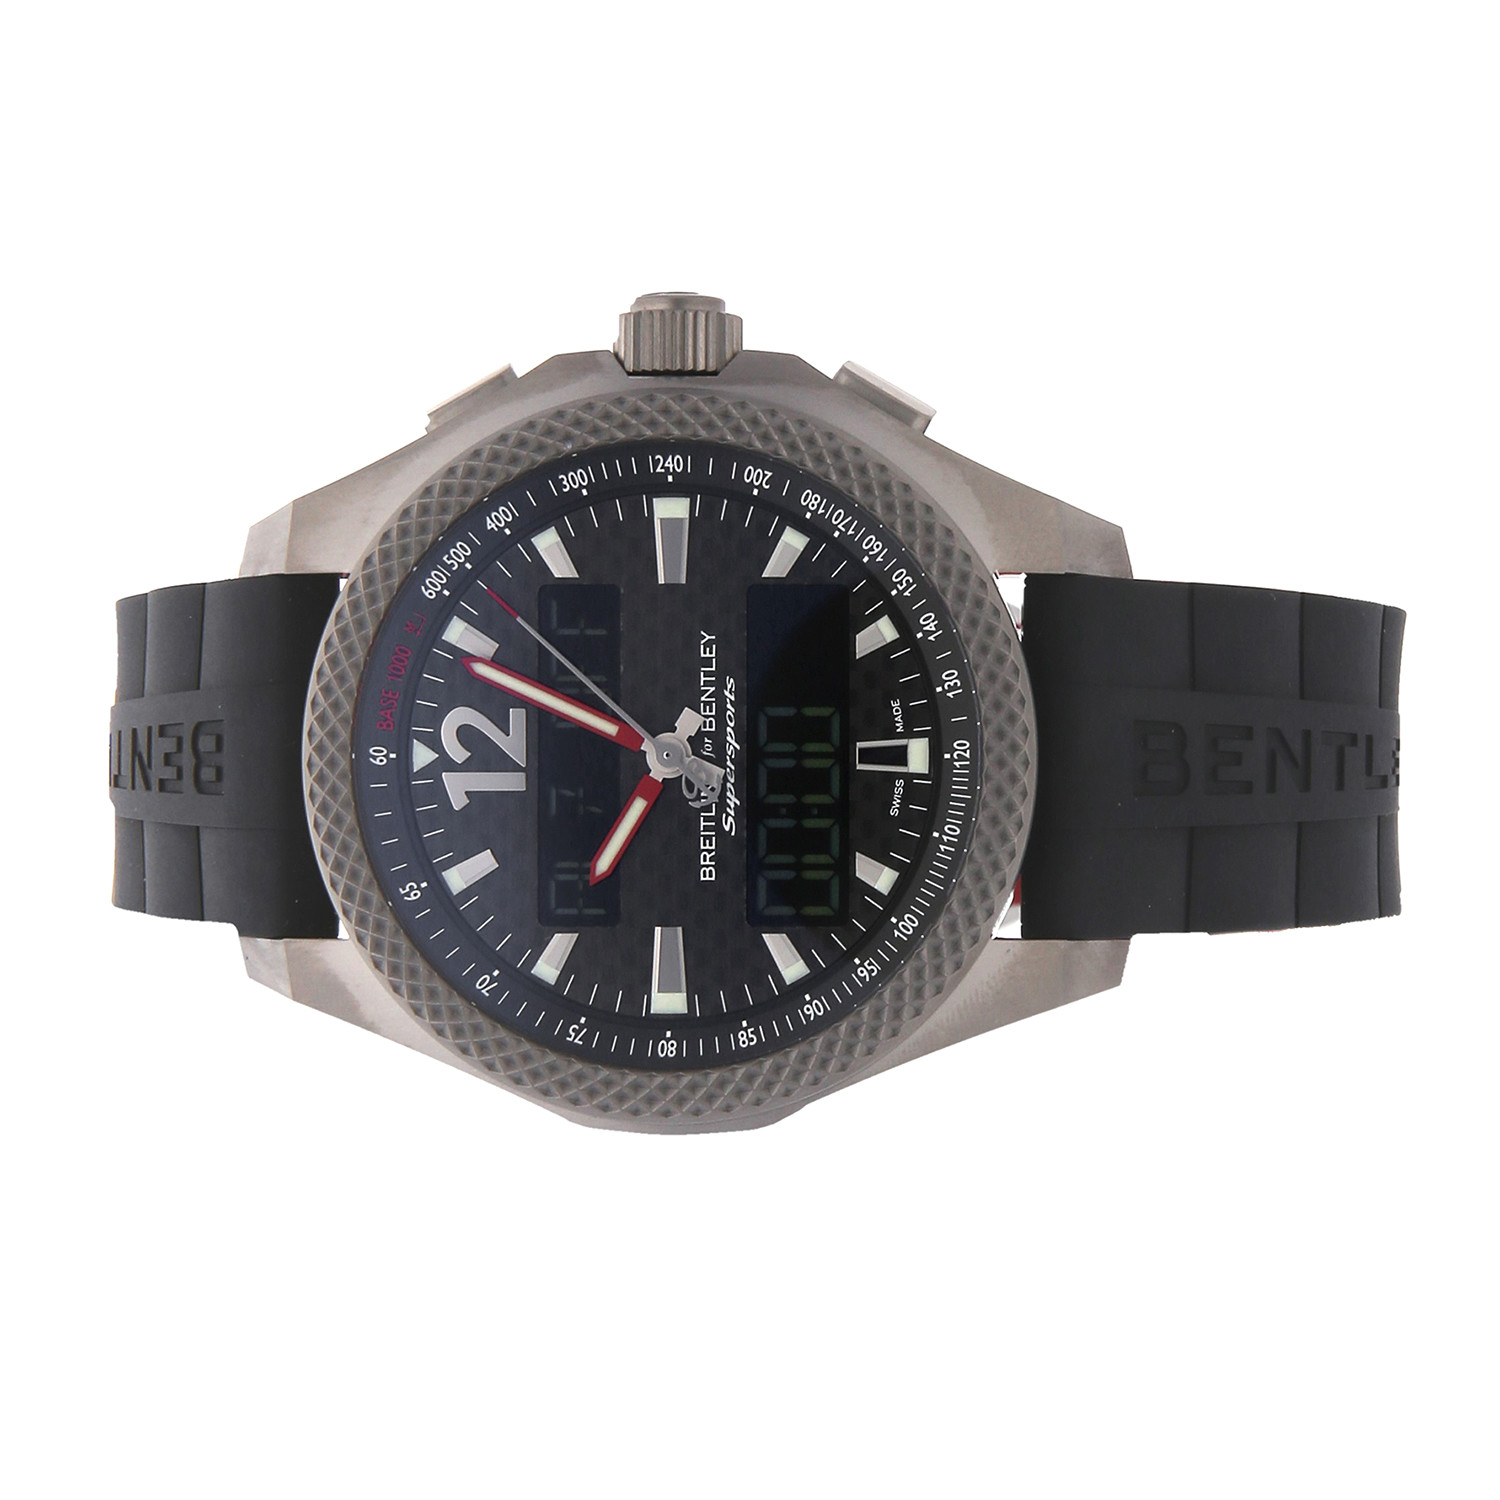 Pre Owned Bentley For Sale: Breitling Bentley Supersports Quartz // EB552022/BF47 // Pre-Owned